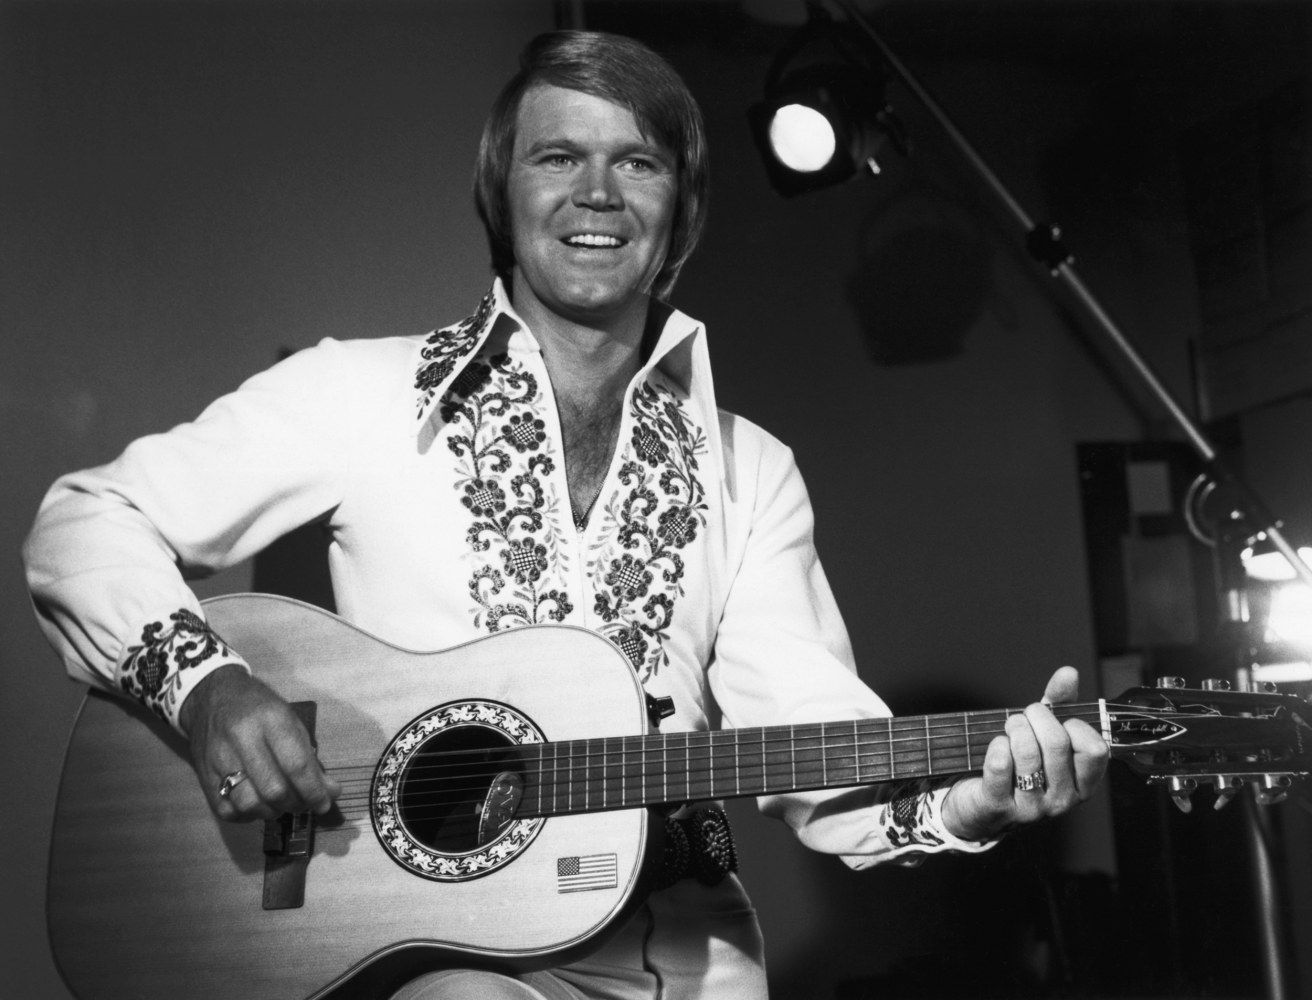 glen campbell legendary country singer and guitarist dies at 81 nbc news. Black Bedroom Furniture Sets. Home Design Ideas